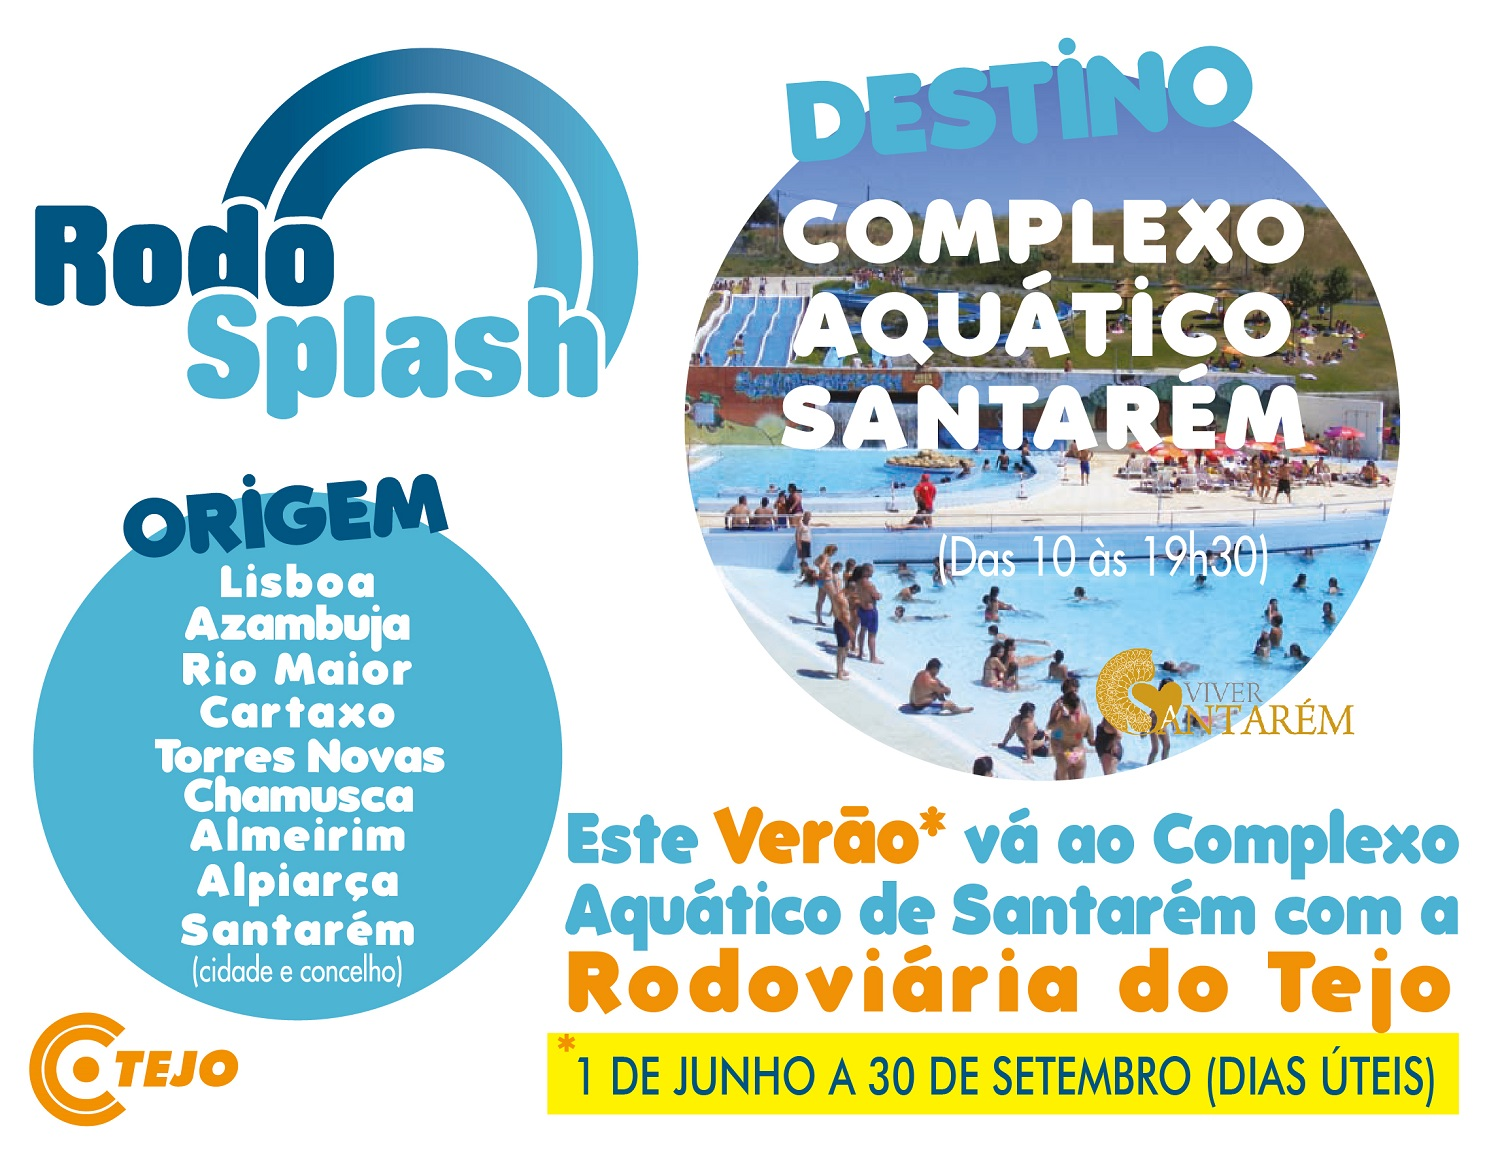 noticia_web_RODOSPLASH 2017-01